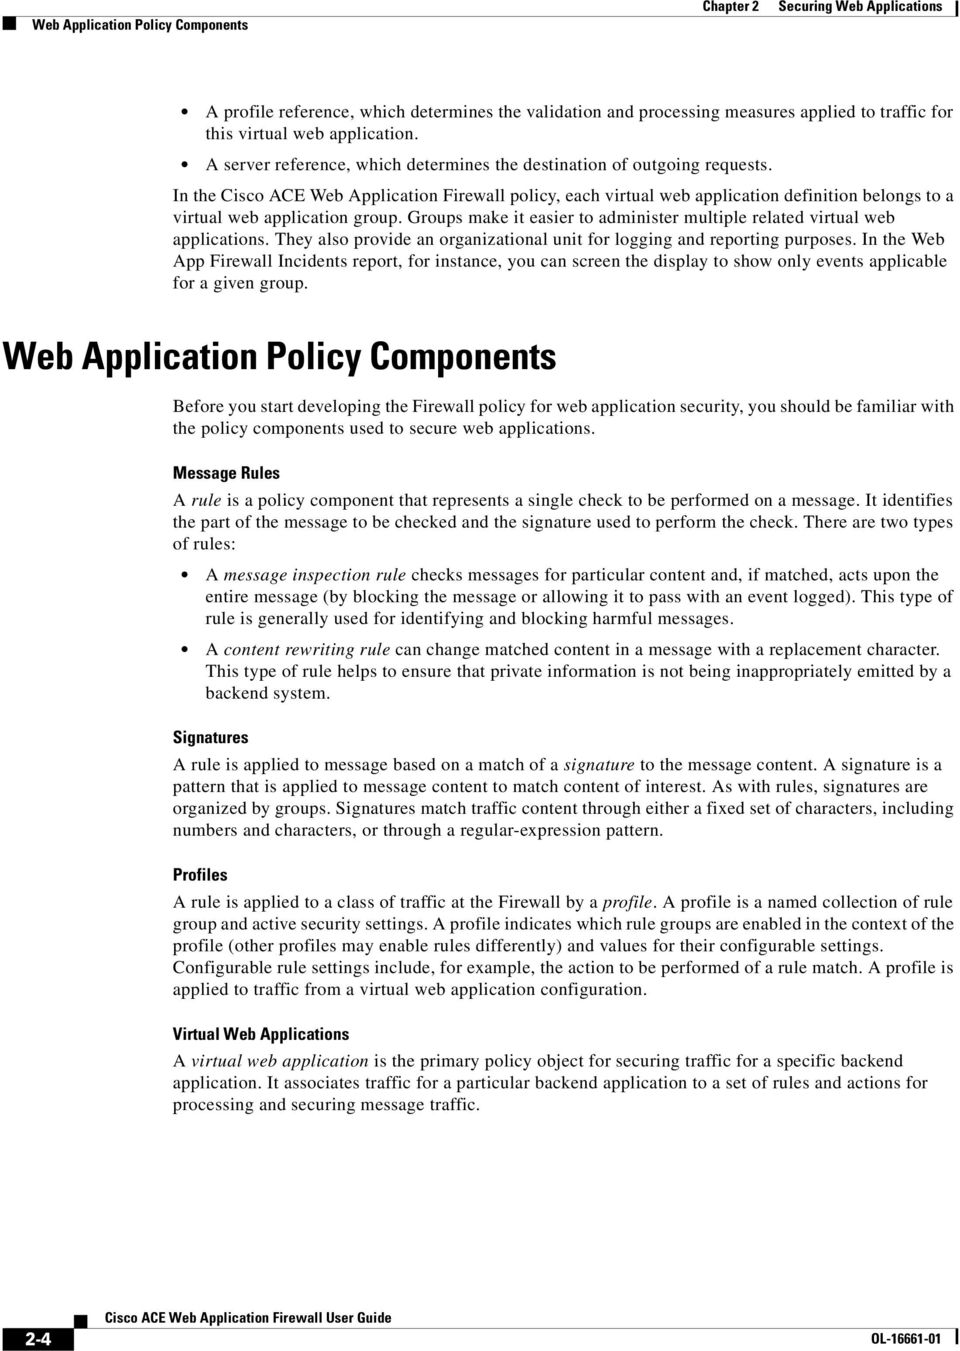 In the Cisco ACE Web Application Firewall policy, each virtual web application definition belongs to a virtual web application group.